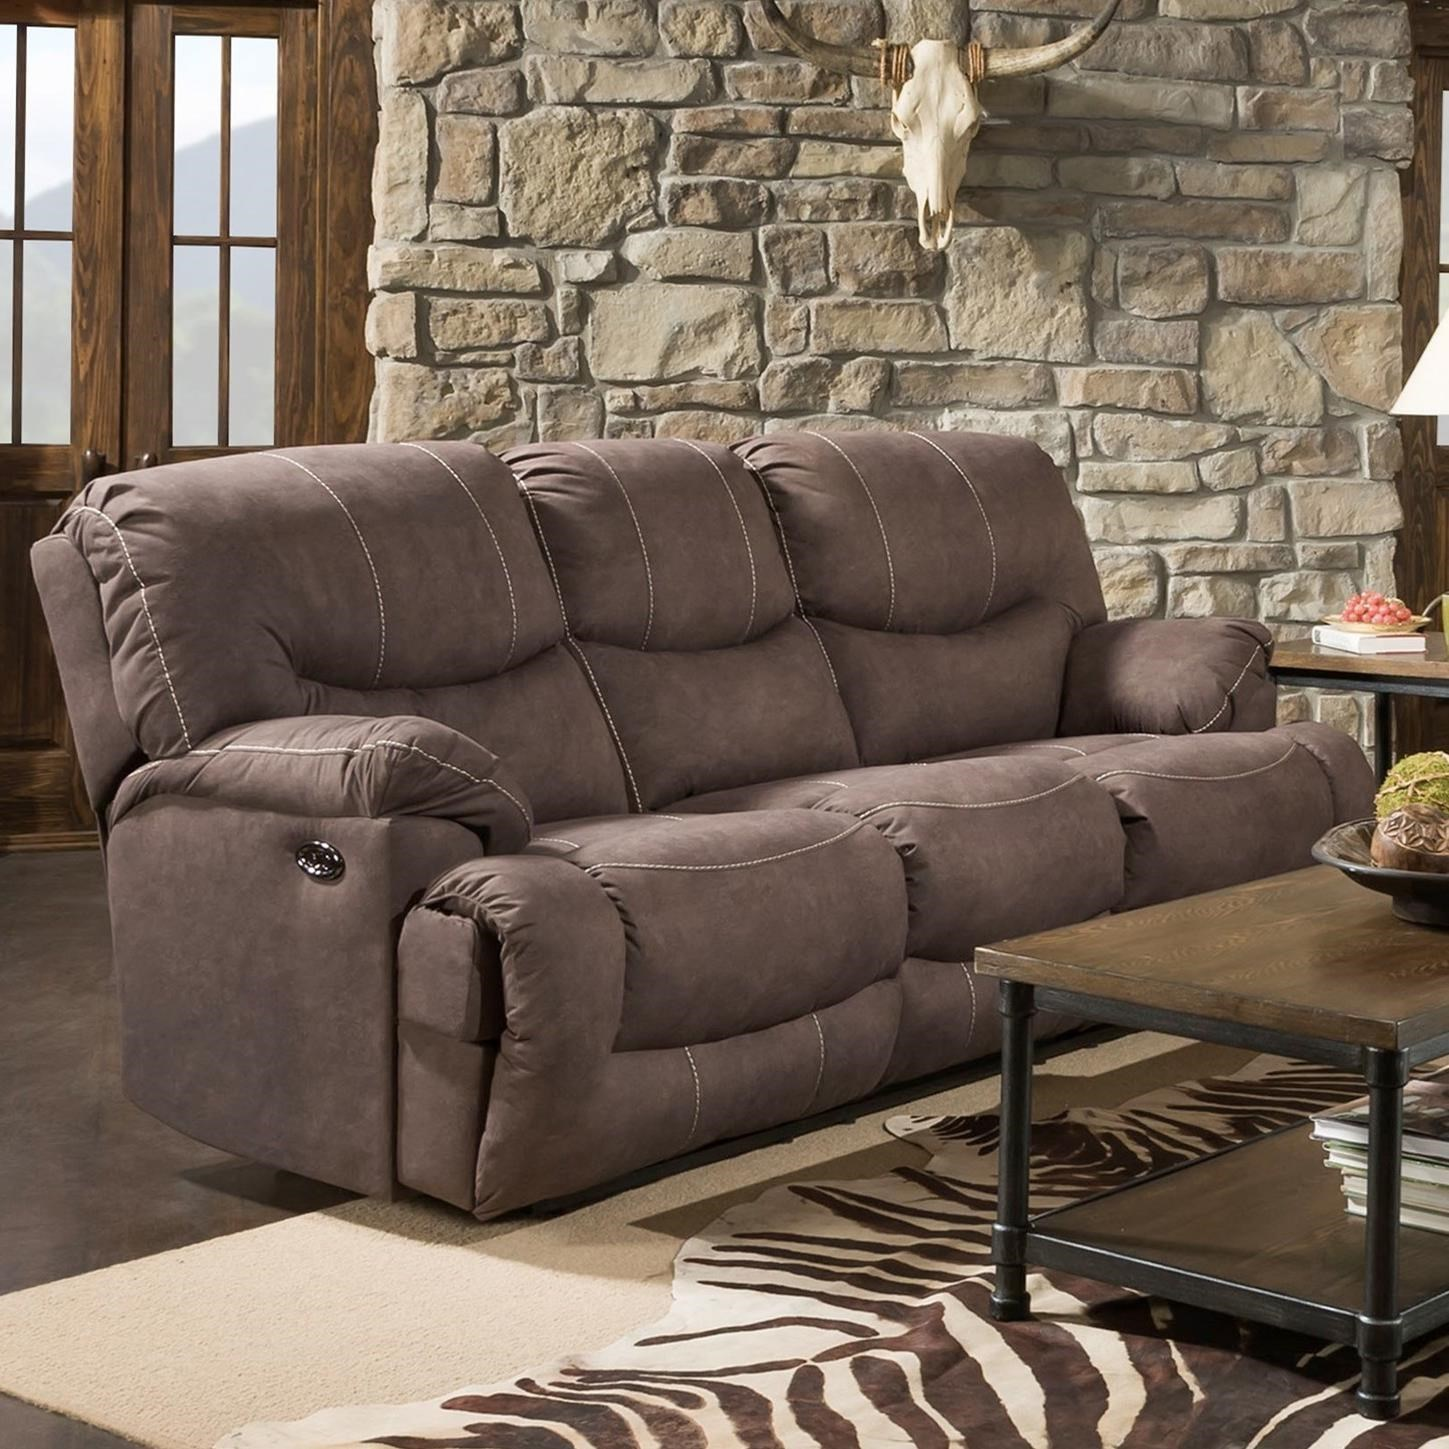 50455BR Double Reclining Sofa by United Furniture Industries at Dream Home Interiors